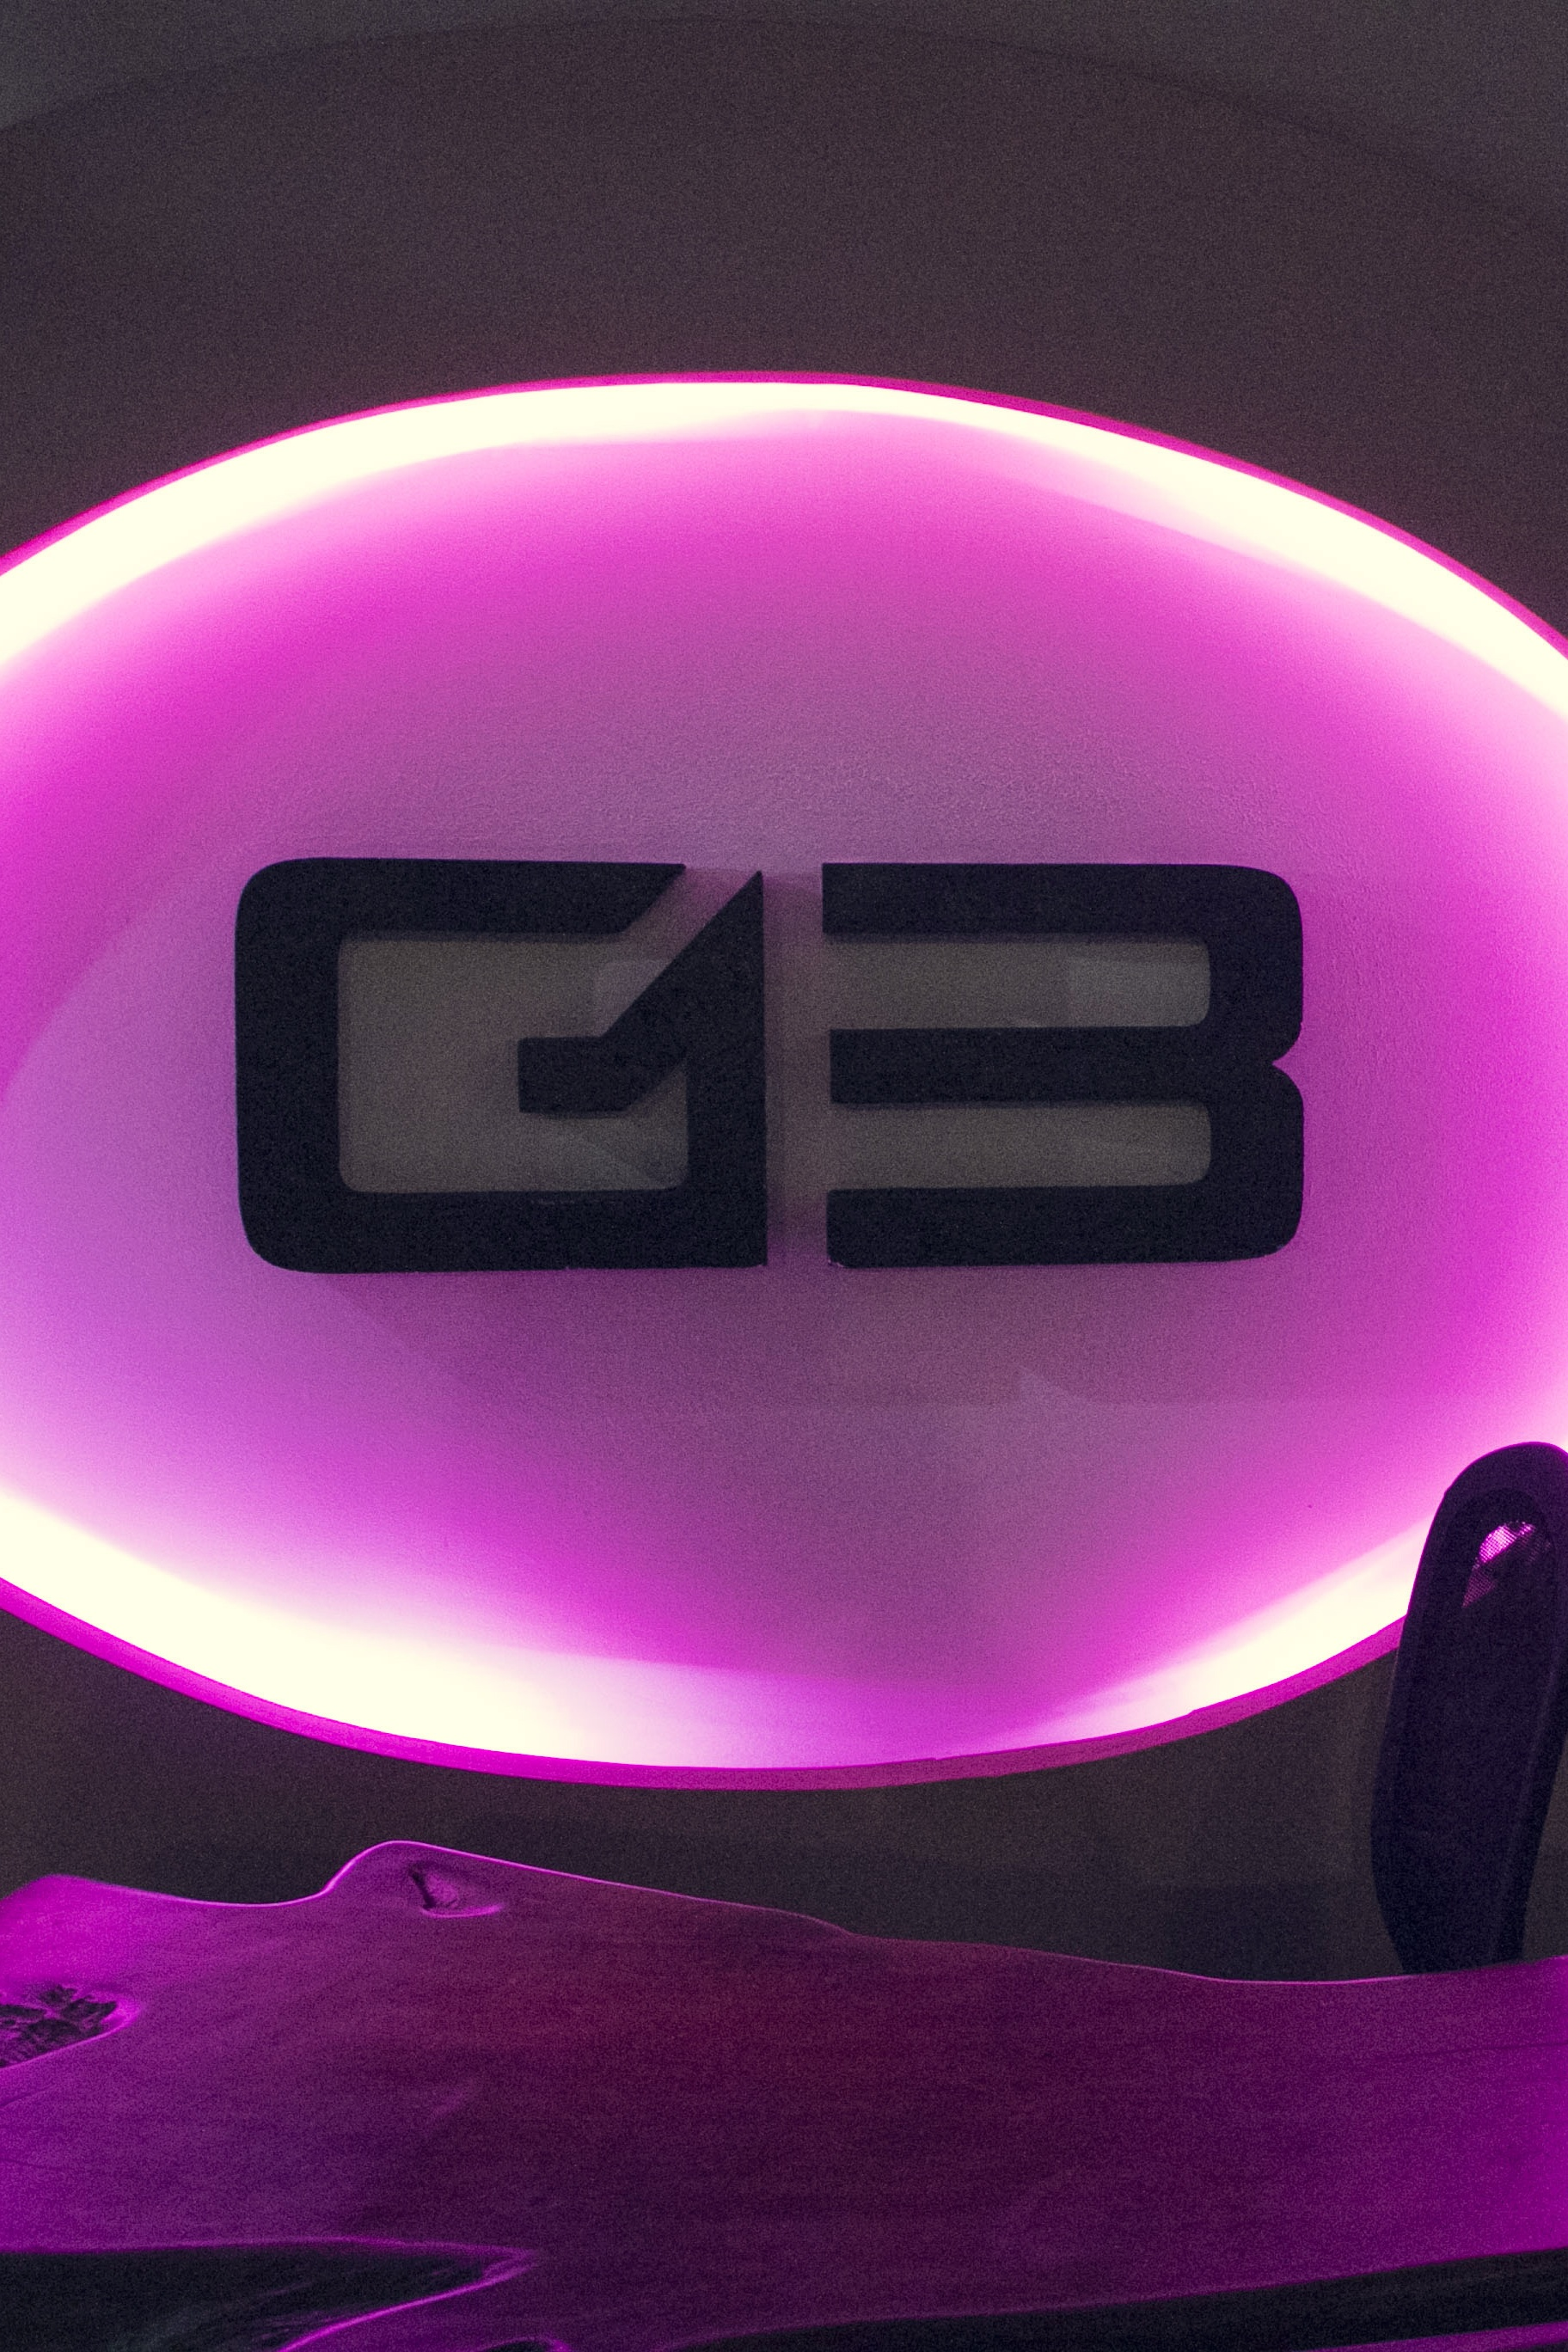 g13 cannabis club logo on the wall light up pink